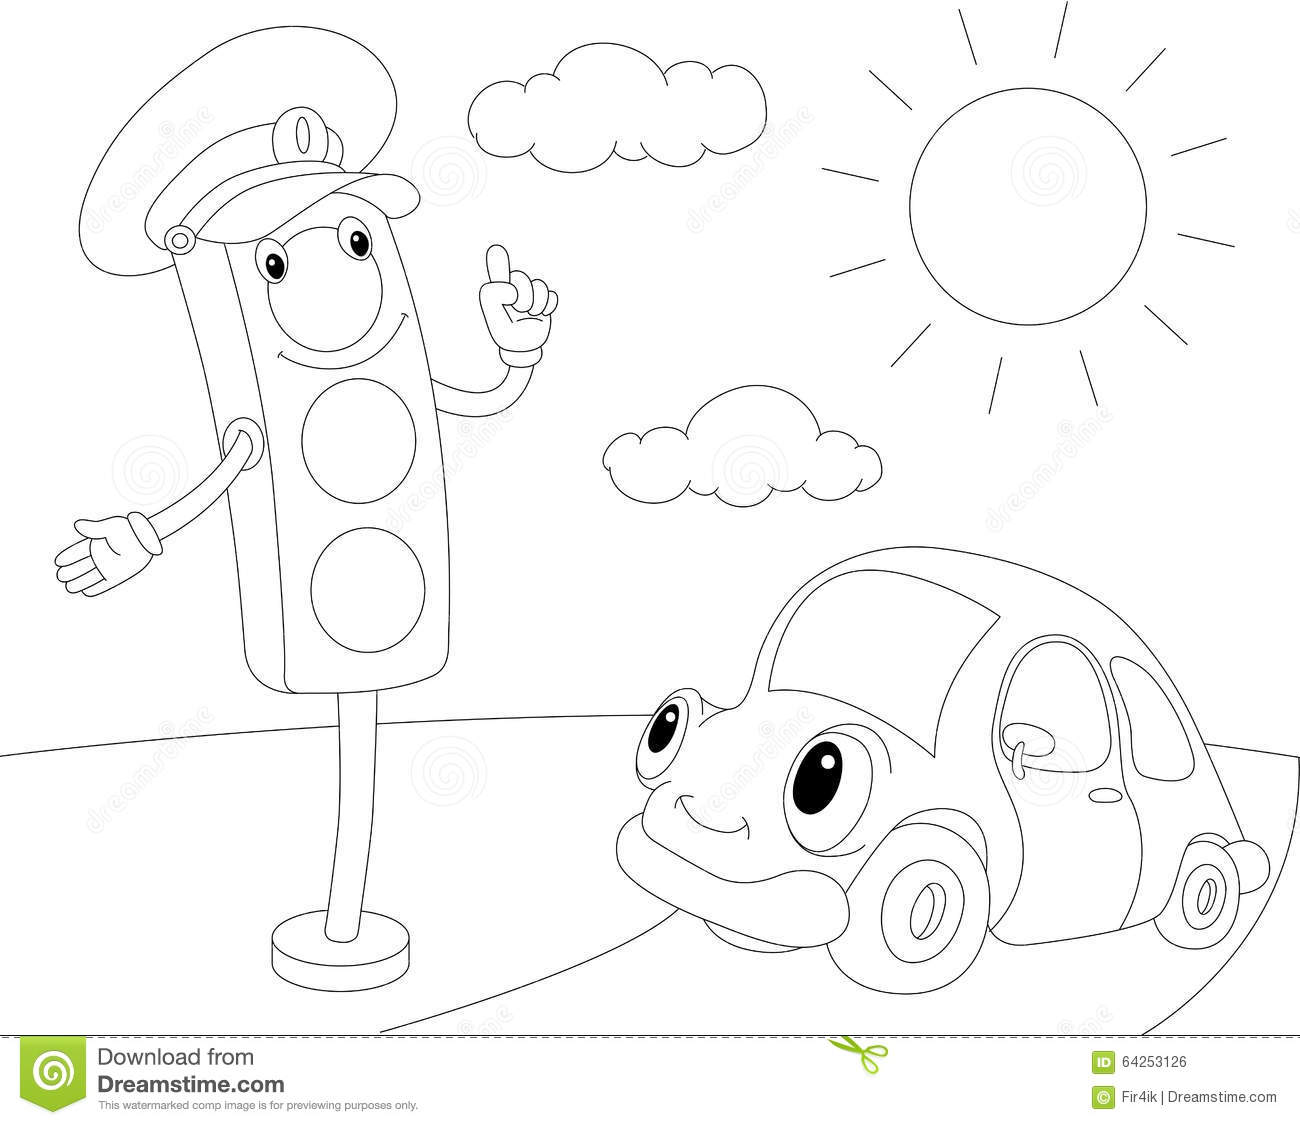 Cartoon Car And Traffic Lights Coloring Book For Kids